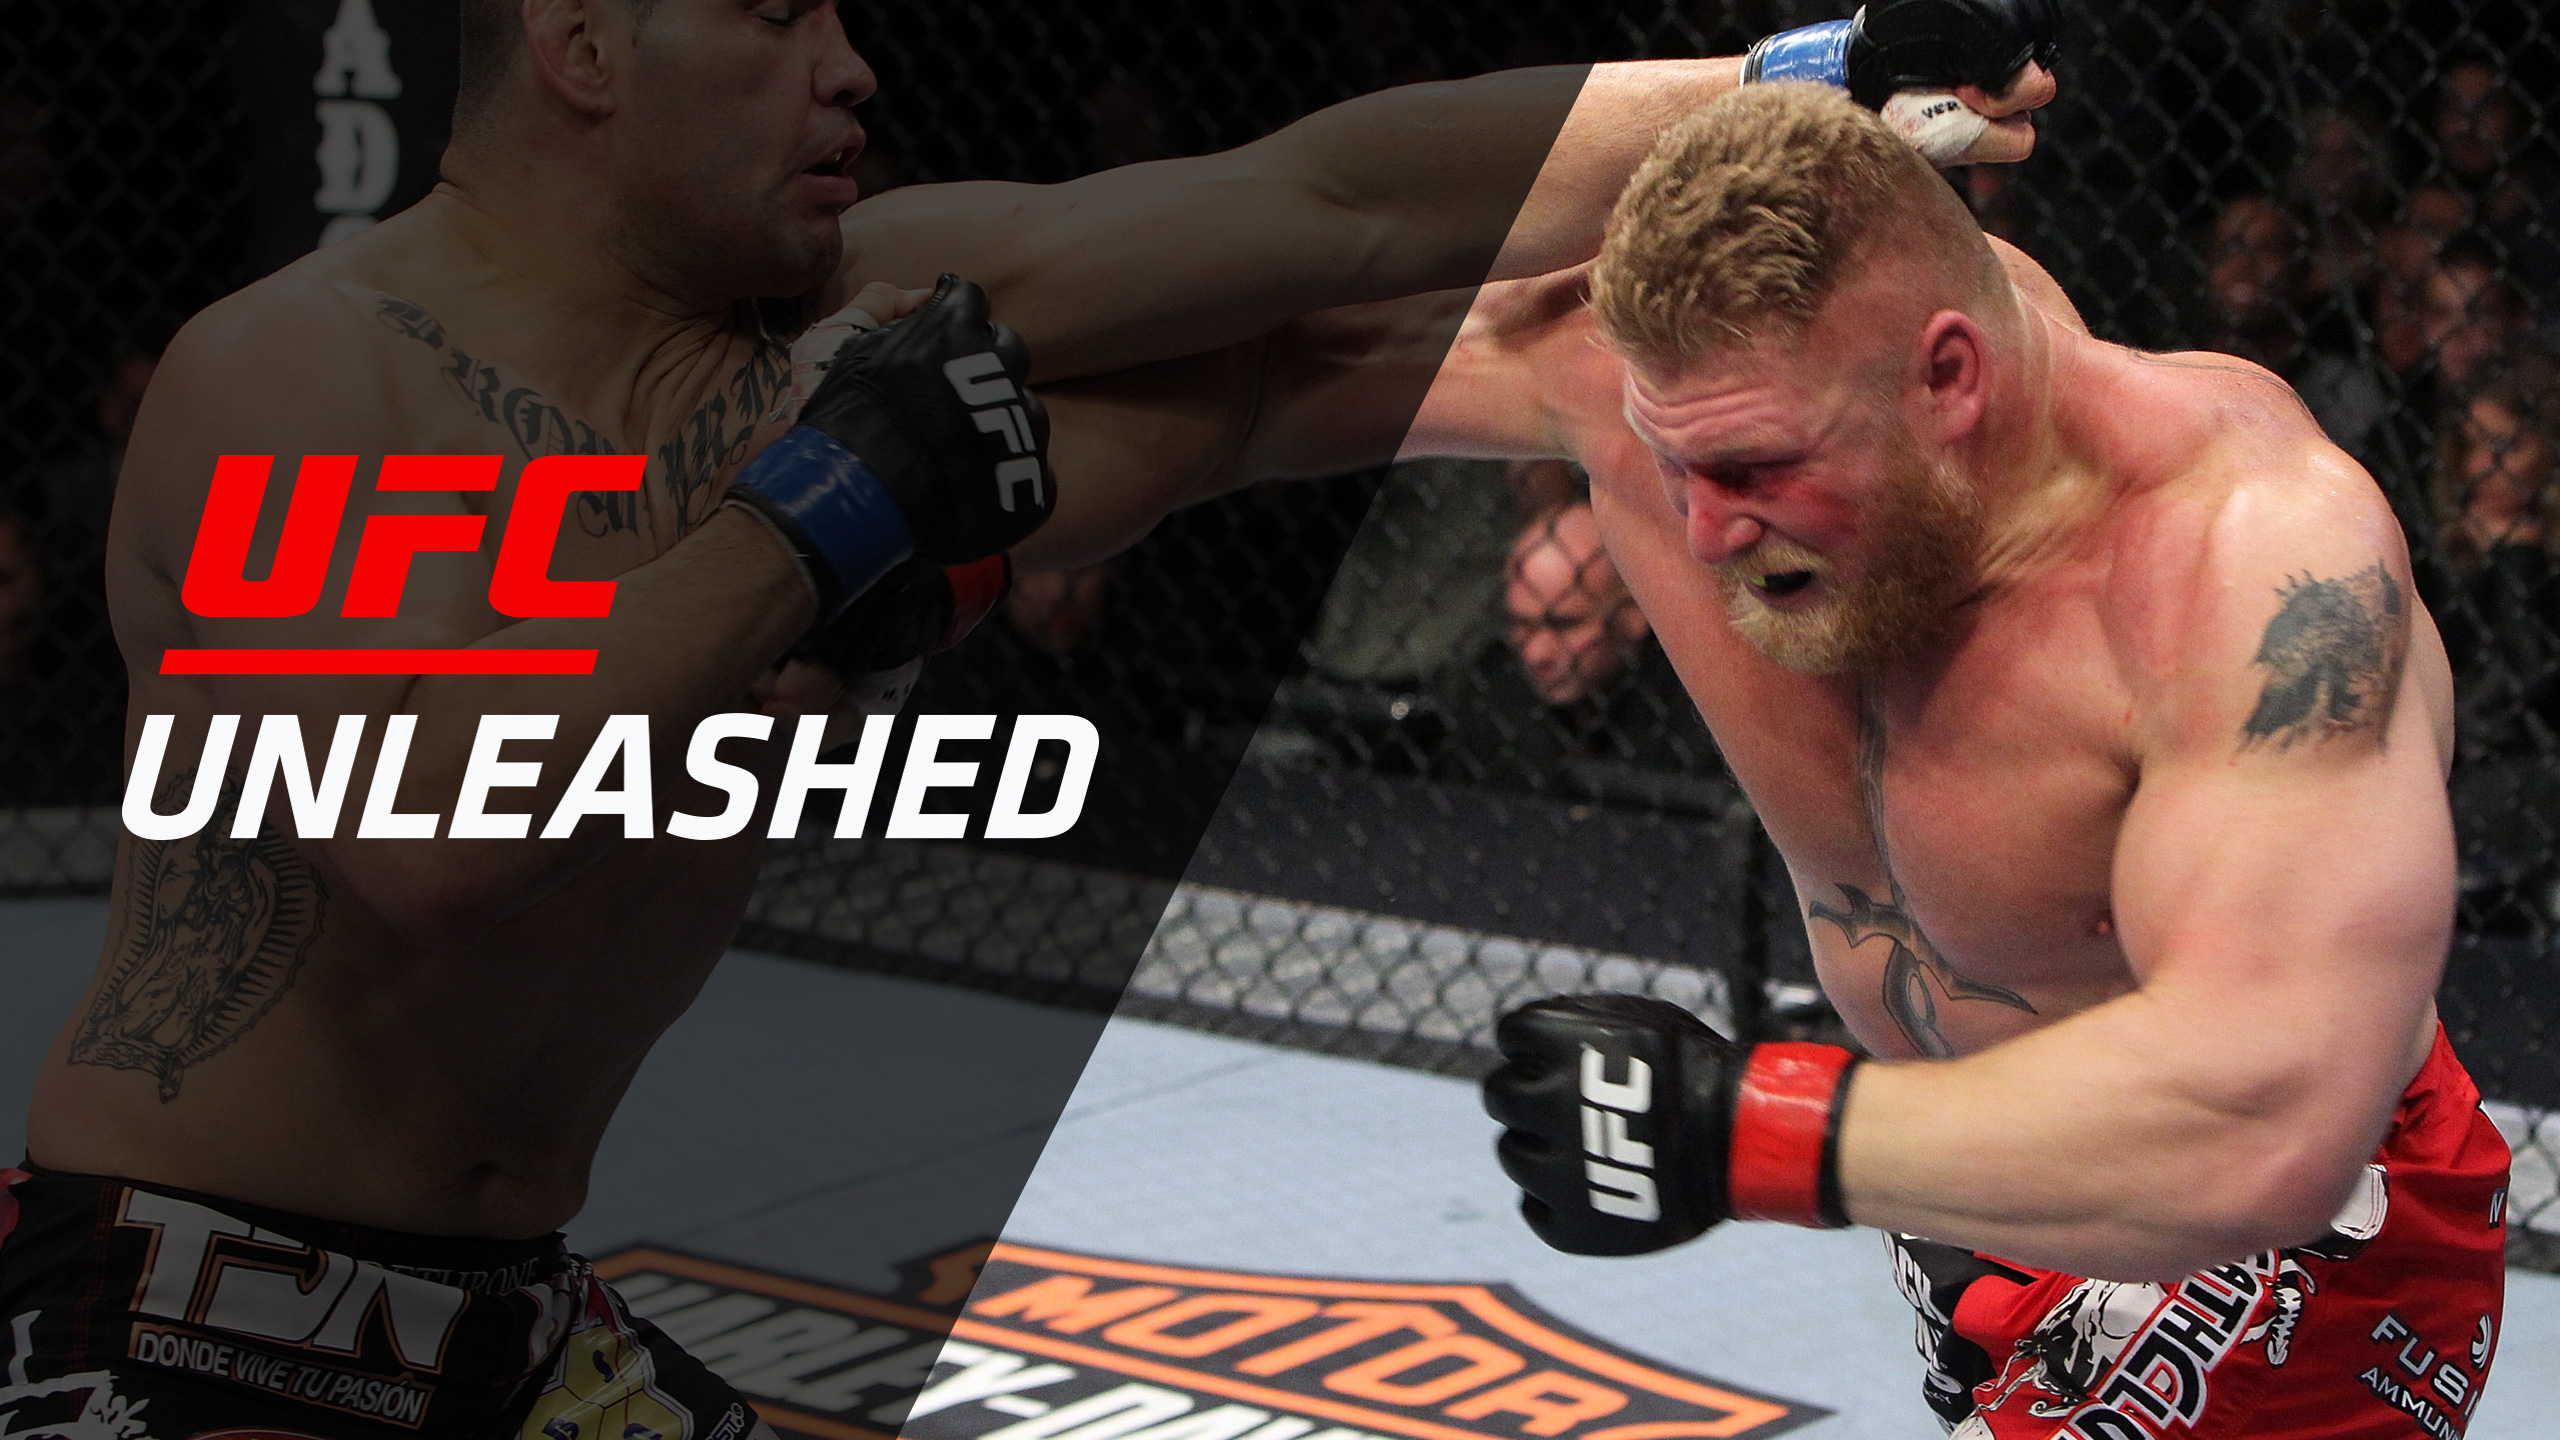 UFC Unleashed: Cain Velasquez vs. Brock Lesnar